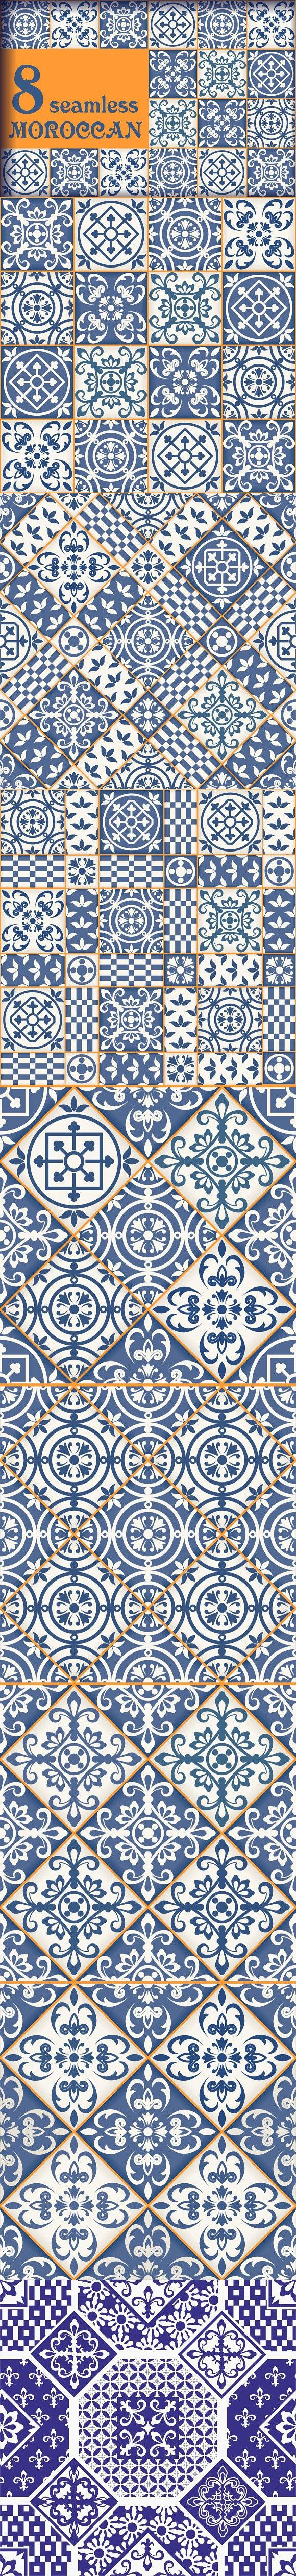 best 25 moroccan tiles ideas that you will like on pinterest 8 seamless moroccan tile pattern